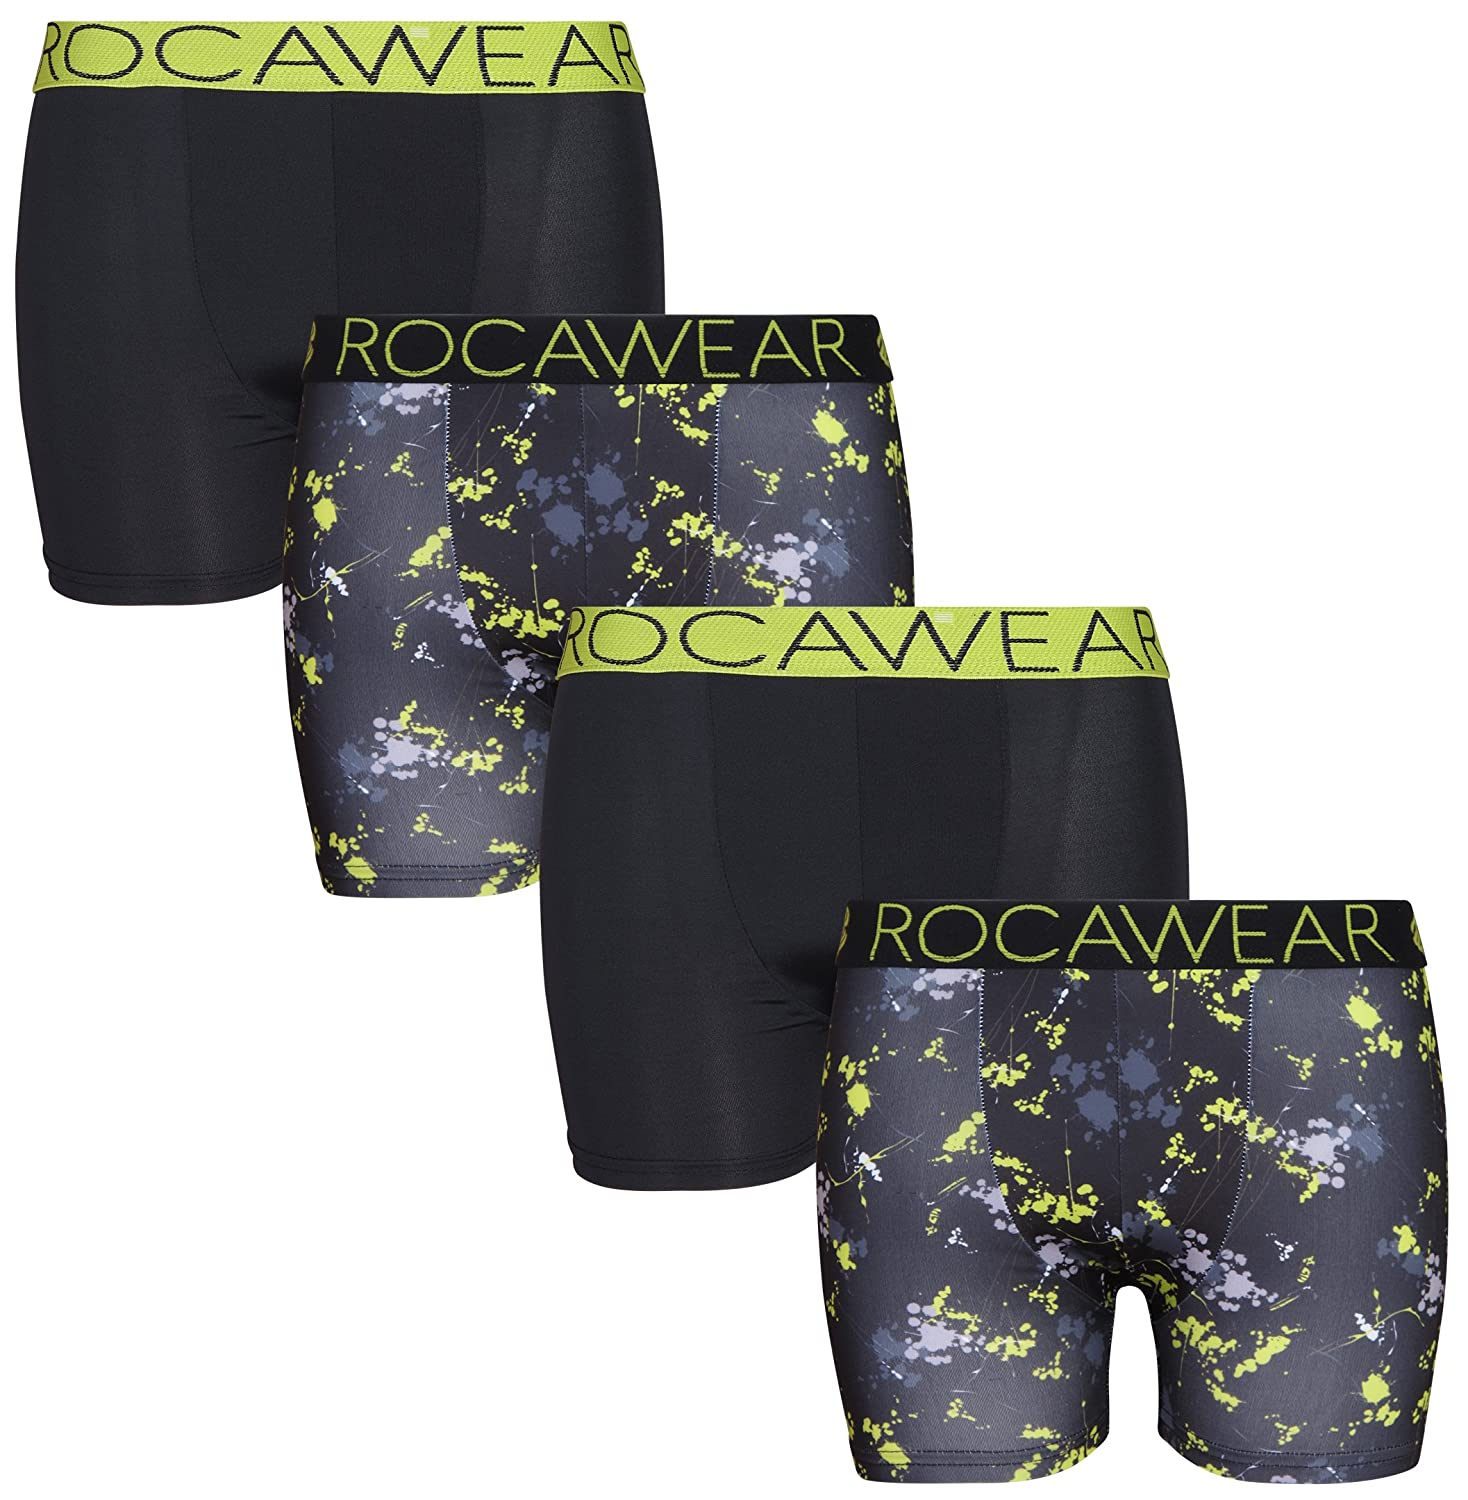 Rocawear Boy's (4 Pack) Performance Boxer Brief Underwear, More Colors Available